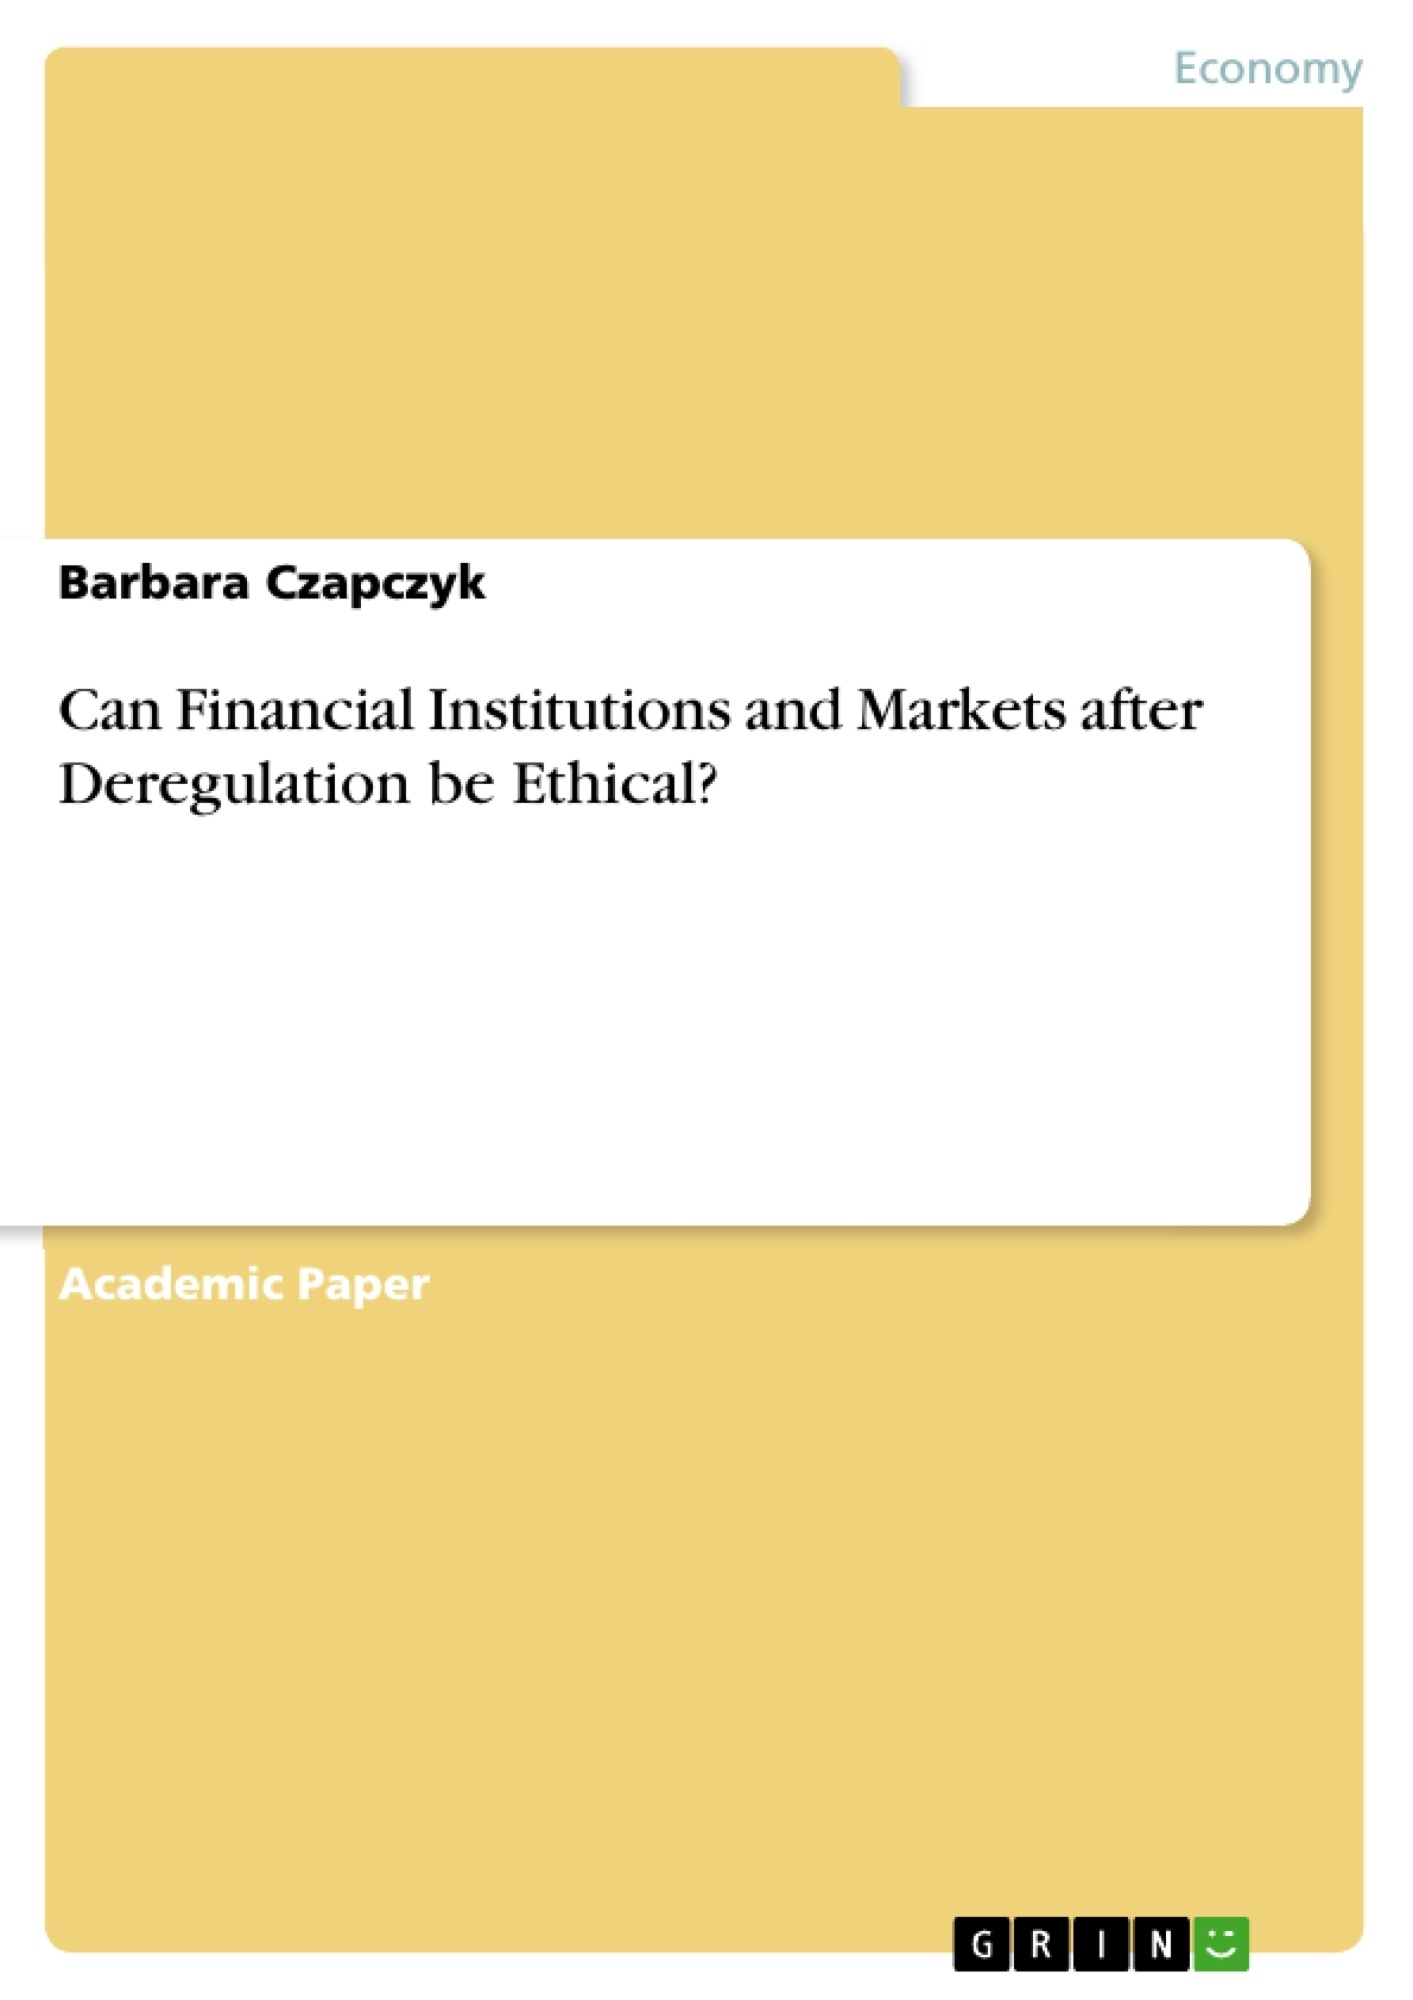 Title: Can Financial Institutions and Markets after Deregulation be Ethical?